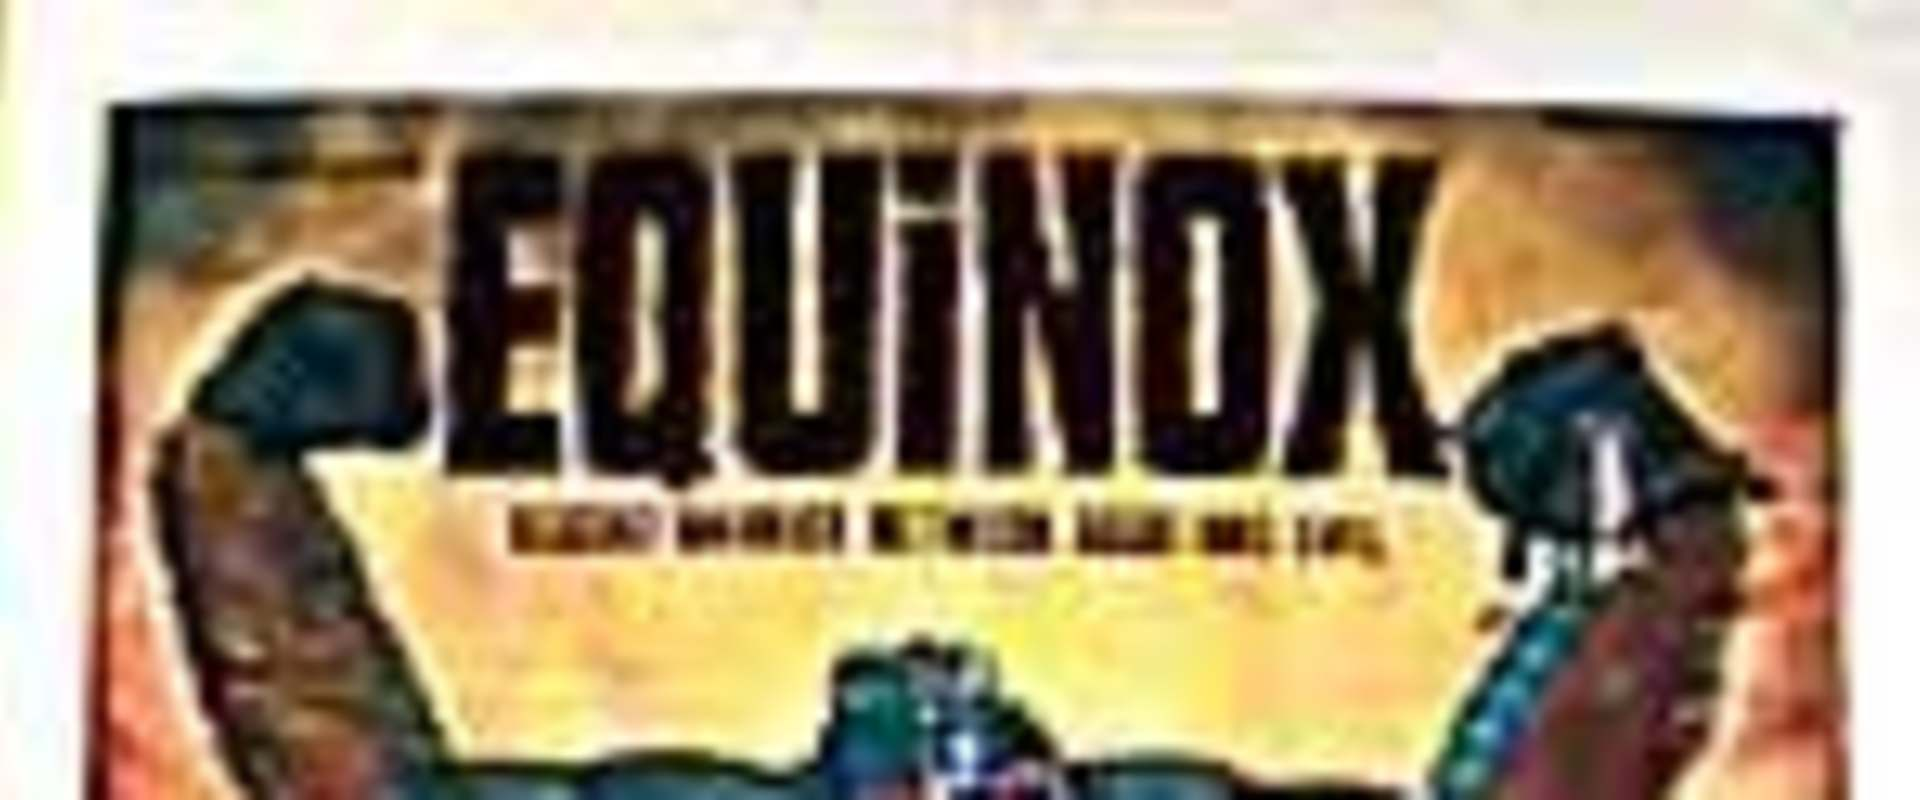 Equinox background 1